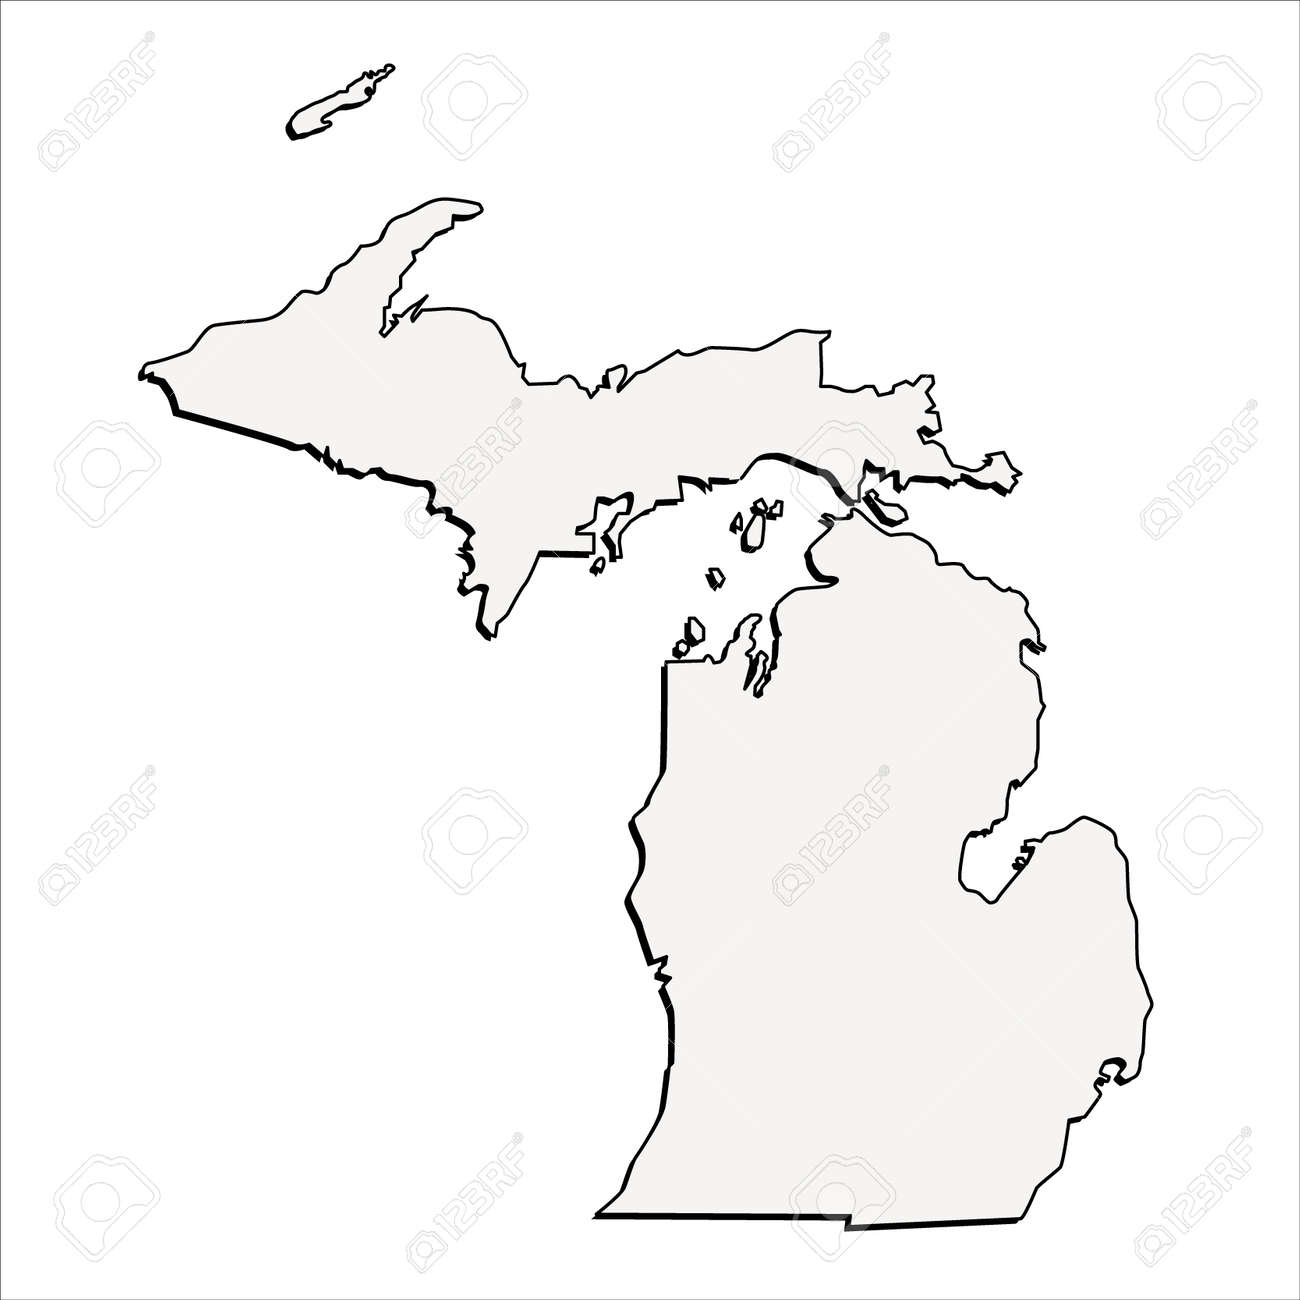 Vector Michigan State 3d Outline Map Royalty Free Cliparts Vectors